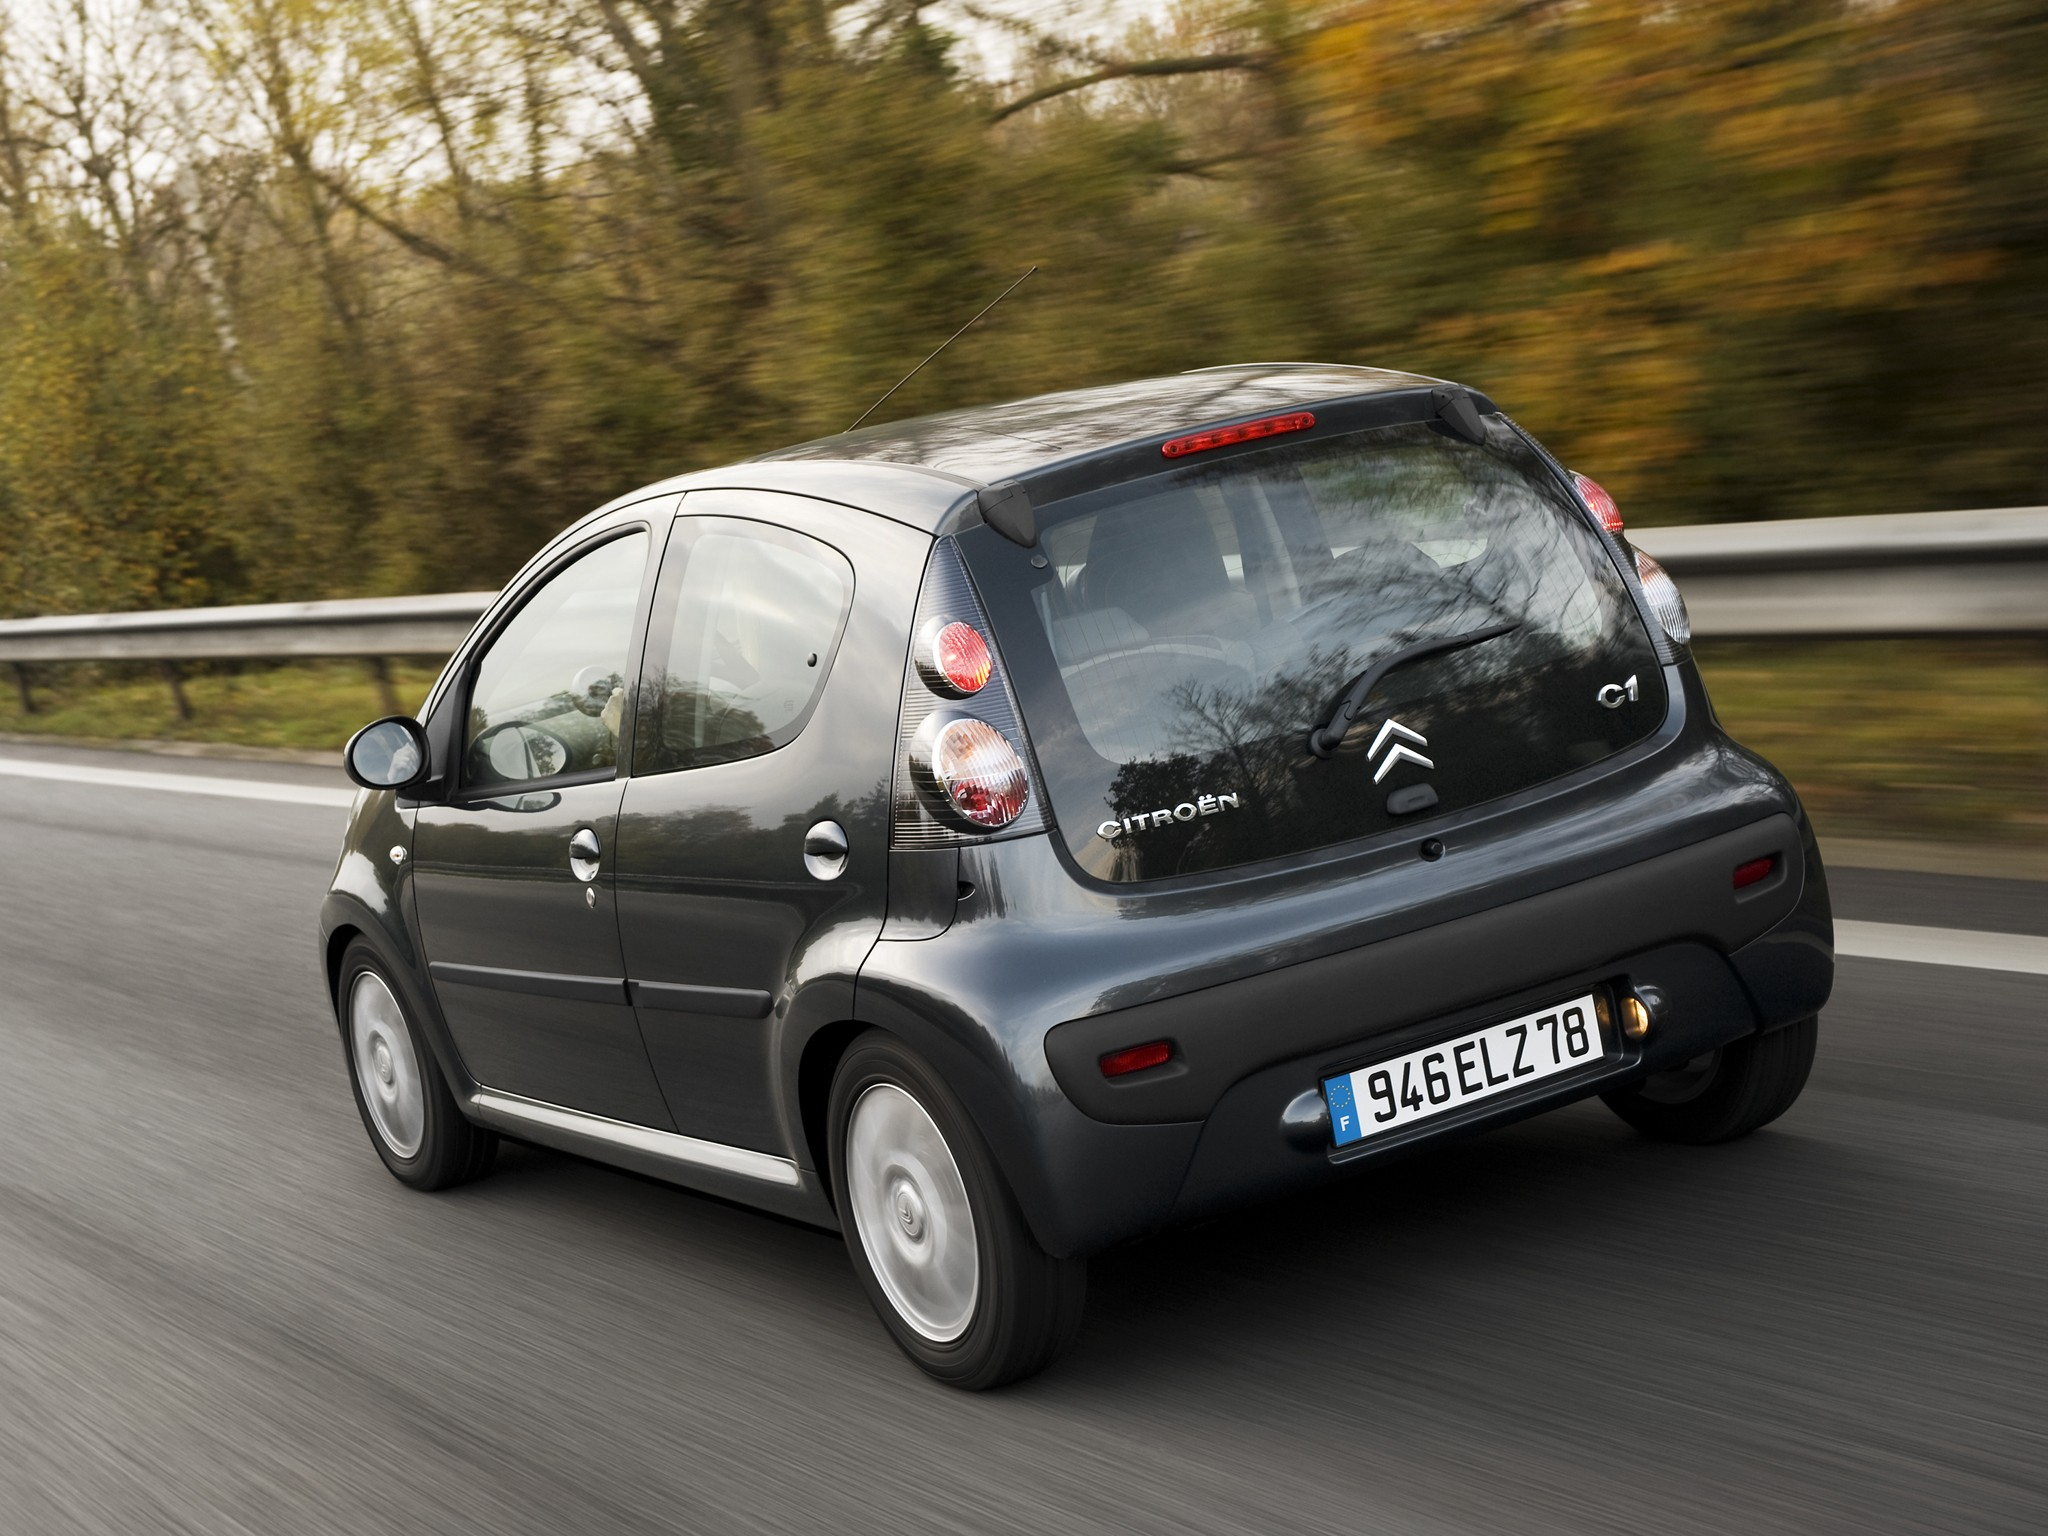 Hybrid Cars For Sale >> CITROEN C1 5 Doors specs & photos - 2009, 2010, 2011, 2012 - autoevolution